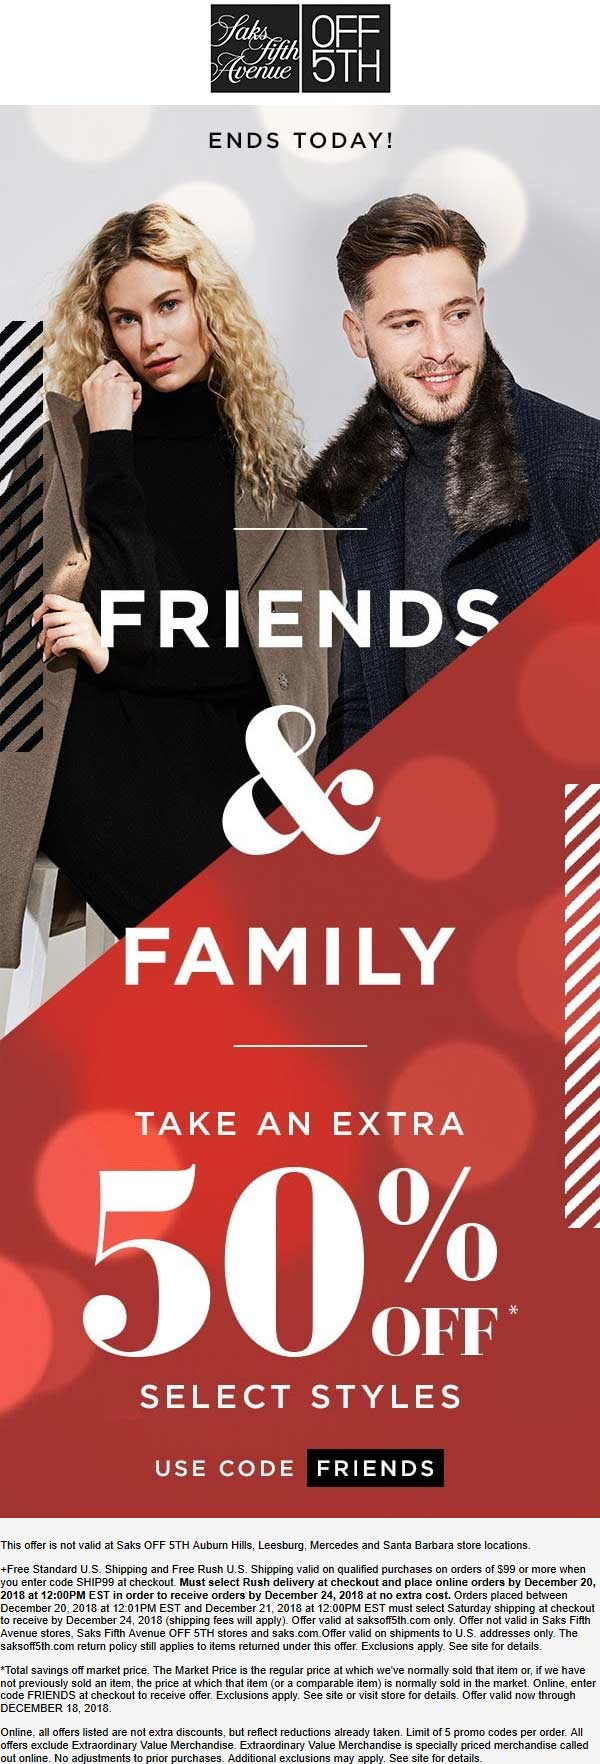 OFF 5TH Coupon October 2019 Extra 50% off today at Saks Off 5TH, or online via promo code FRIENDS